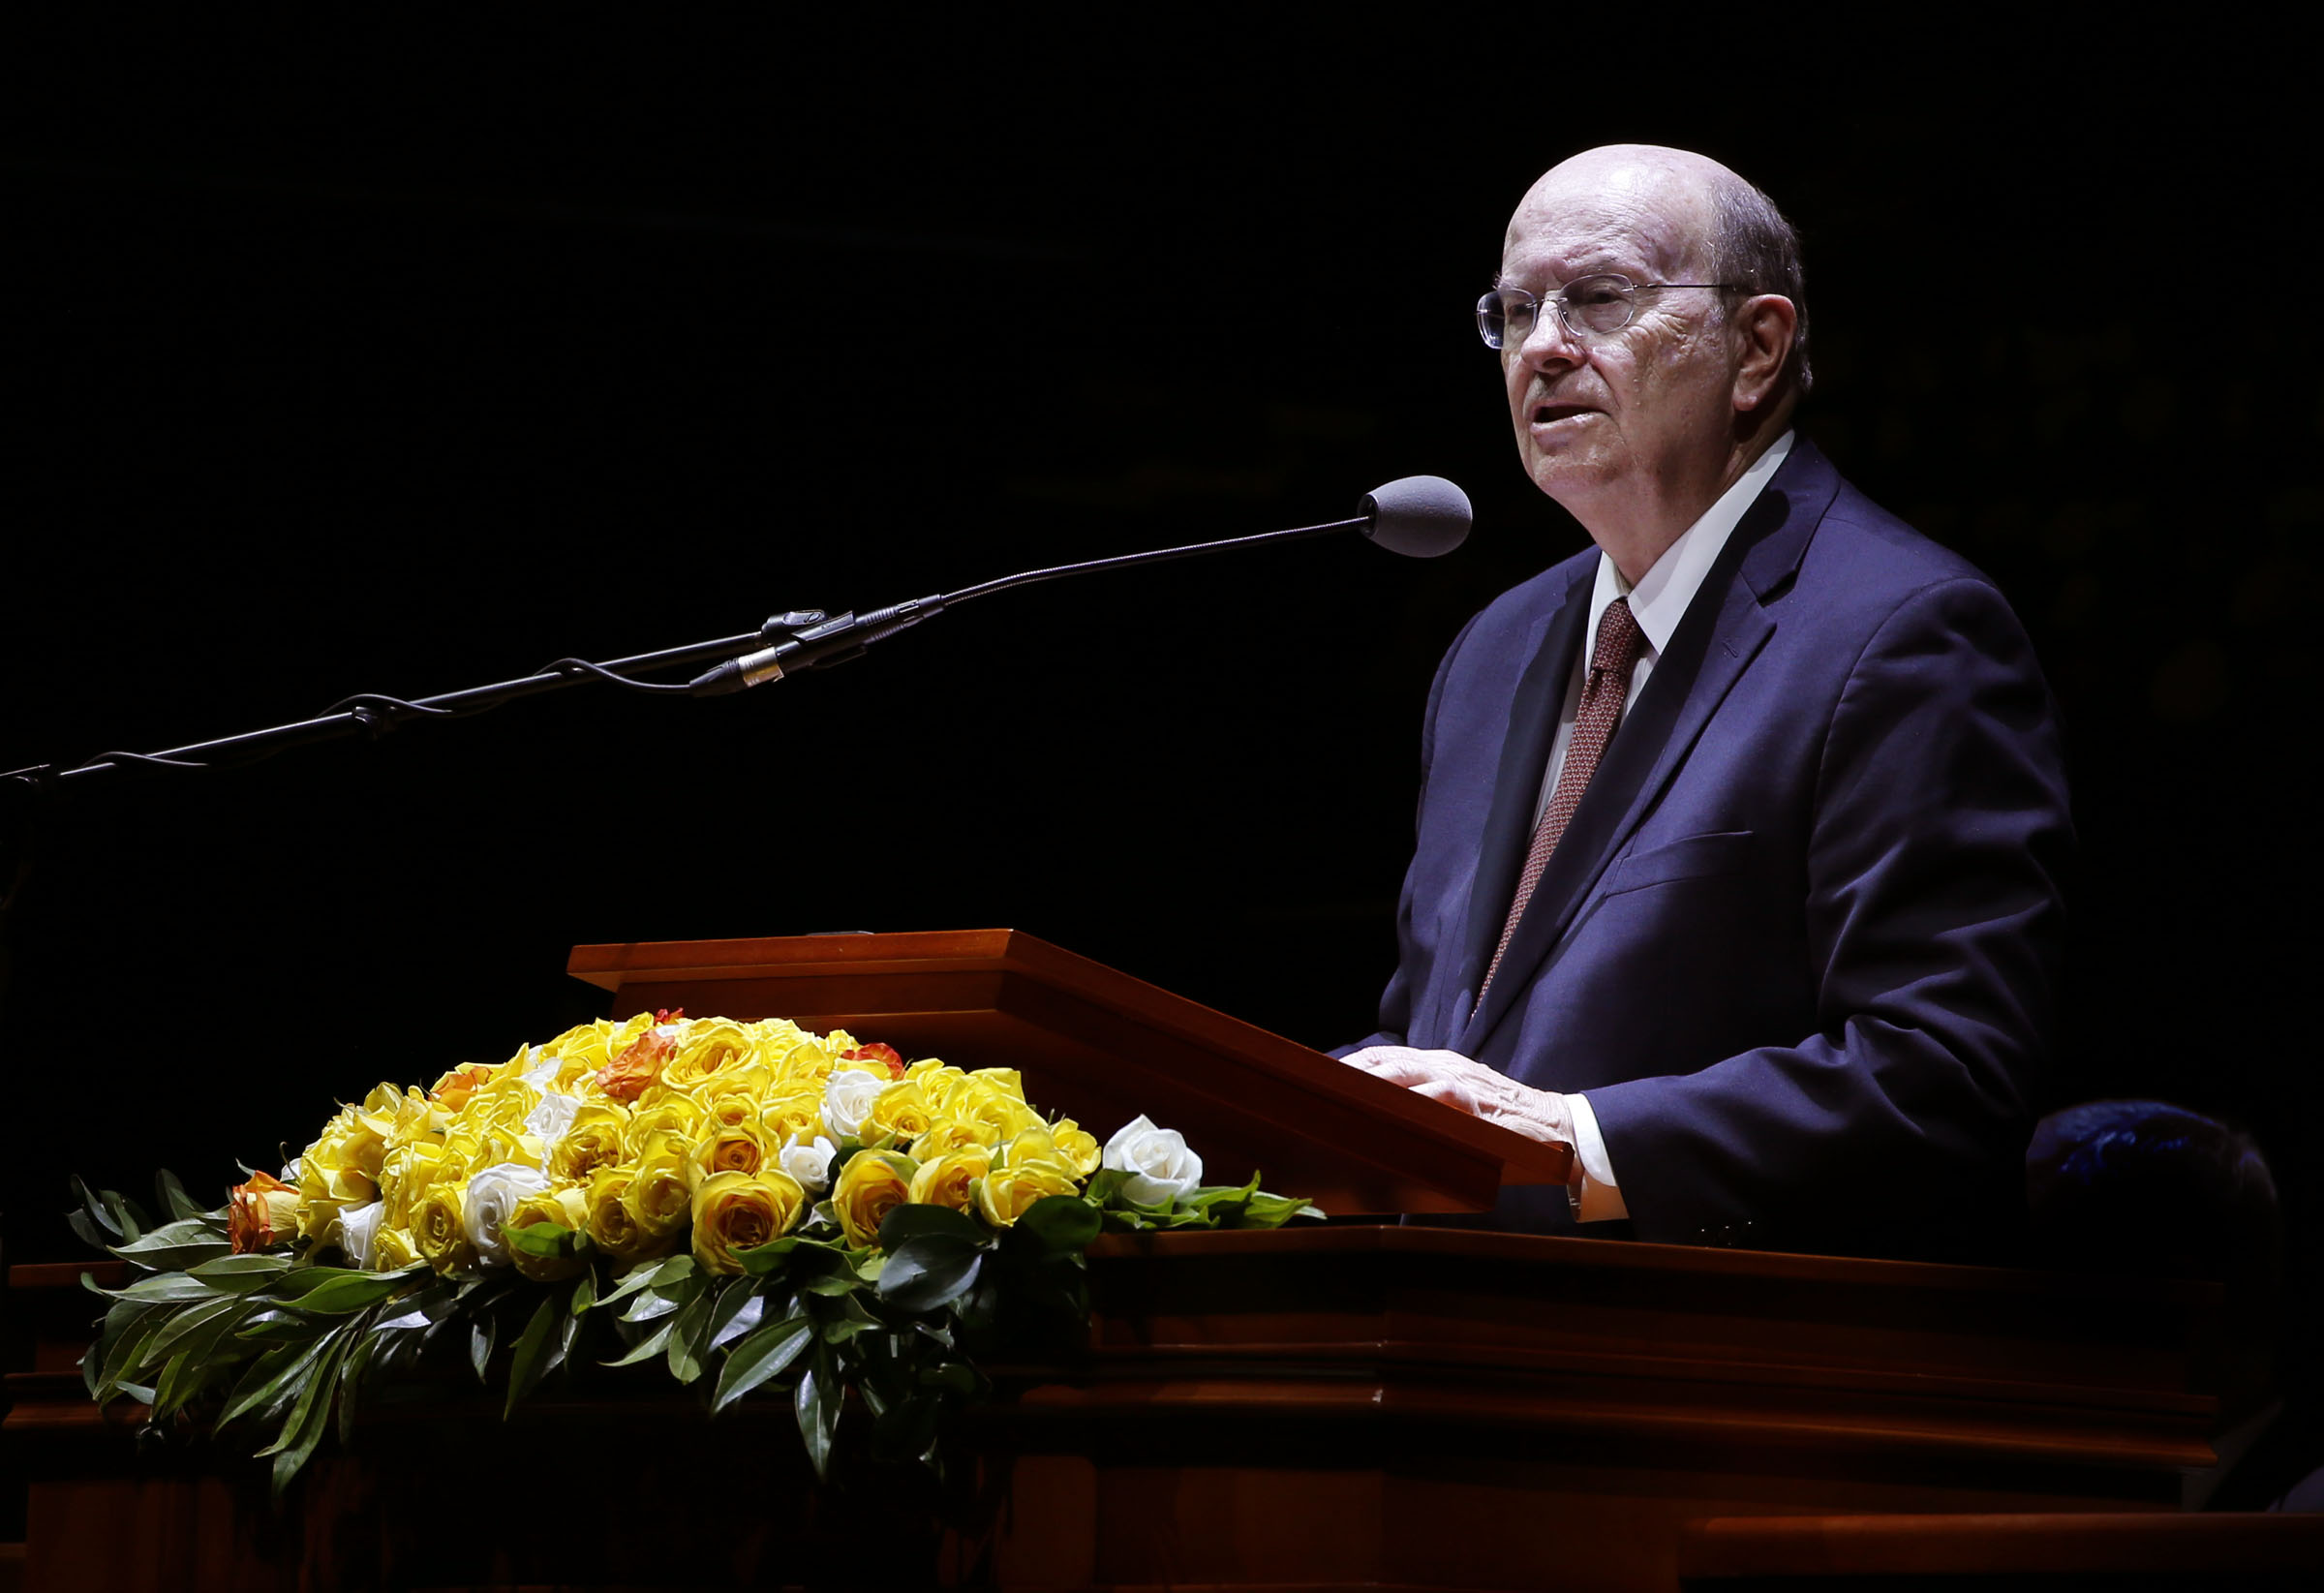 Elder Quentin L. Cook of the Quorum of the Twelve Apostles of The Church of Jesus Christ of Latter-day Saints speaks during a Latin America Ministry Tour devotional in Bogota, Colombia on Sunday, Aug. 25, 2019.